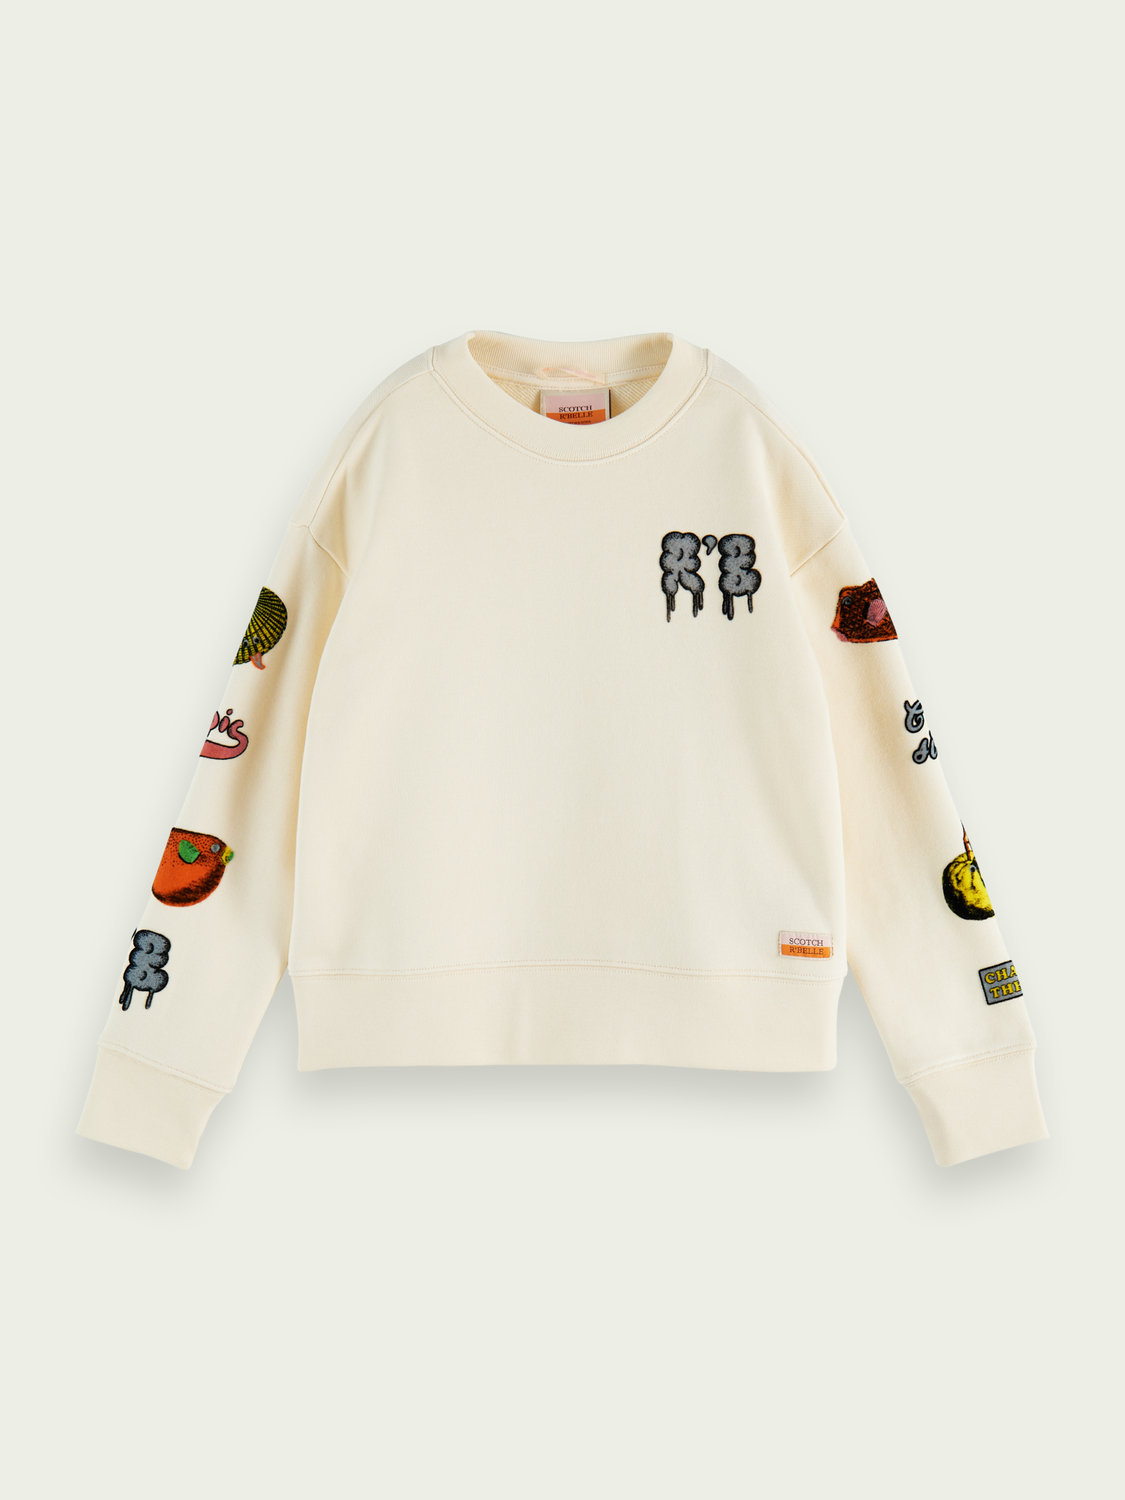 Kinderen Relaxed fit sweater met artwork en ronde hals